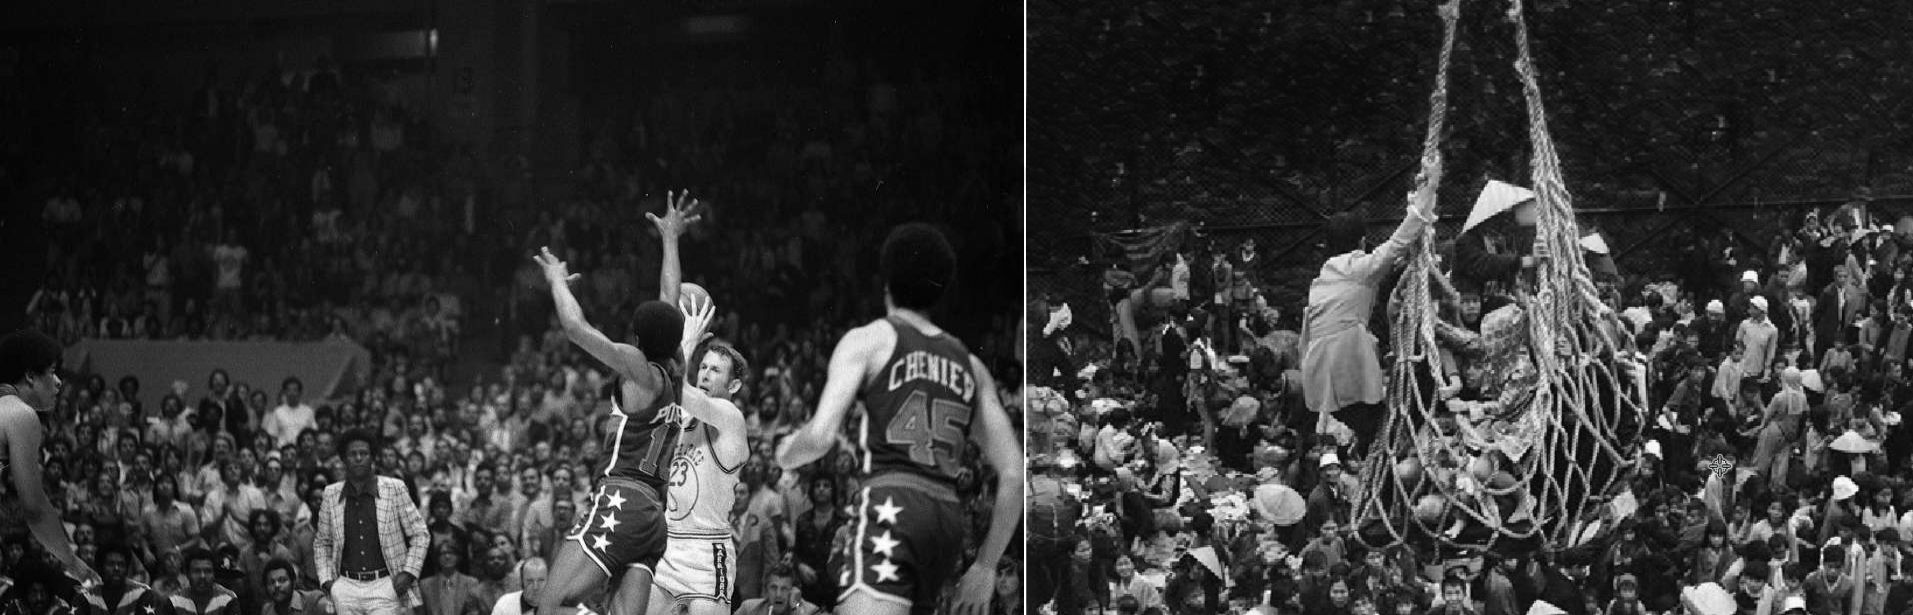 "1975: LEFT: GOLDEN STATE WARRIORS VS. THE WASHINGTON BULLETS IN THE NBA FINALS (VINCENT MAGGIORA, SAN FRANCISCO CHRONICLE)  1975: RIGHT: A CARGO NET LIFTS REFUGEES FROM A BARGE ONTO THE SS PIONEER CONTENDER FOR EVACUATION FROM THE FALLEN CITY OF          96               Normal   0           false   false   false     EN-US   X-NONE   X-NONE                                                                                                                                                                                                                                                                                                                                                                                                                                                                                                                                                                                                                                                                                                                                                                                                                                                                                  /* Style Definitions */ table.MsoNormalTable 	{mso-style-name:""Table Normal""; 	mso-tstyle-rowband-size:0; 	mso-tstyle-colband-size:0; 	mso-style-noshow:yes; 	mso-style-priority:99; 	mso-style-parent:""""; 	mso-padding-alt:0in 5.4pt 0in 5.4pt; 	mso-para-margin:0in; 	mso-para-margin-bottom:.0001pt; 	mso-pagination:widow-orphan; 	font-size:12.0pt; 	font-family:Calibri; 	mso-ascii-font-family:Calibri; 	mso-ascii-theme-font:minor-latin; 	mso-hansi-font-family:Calibri; 	mso-hansi-theme-font:minor-latin;}      Đà Nẵng, VIETNAM. it took EIGHT HOURS TO LOAD SOME 6,000 REFUGEES ABOARD THE SHIP. (AP/PETER O'LOUGHLIN)"